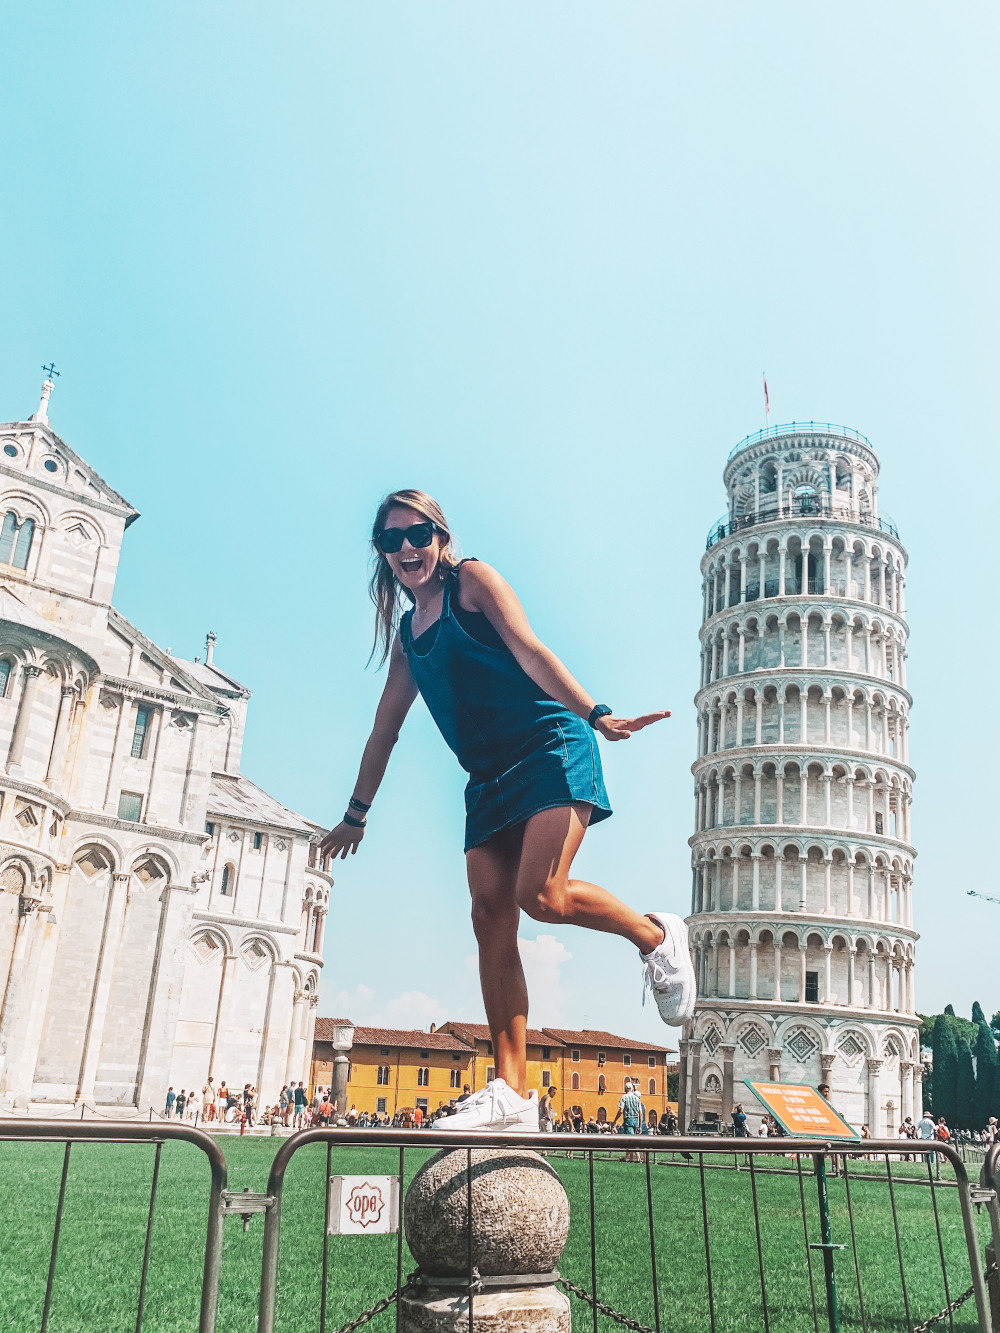 Lilly Kays balances near the Leaning Tower of Pisa